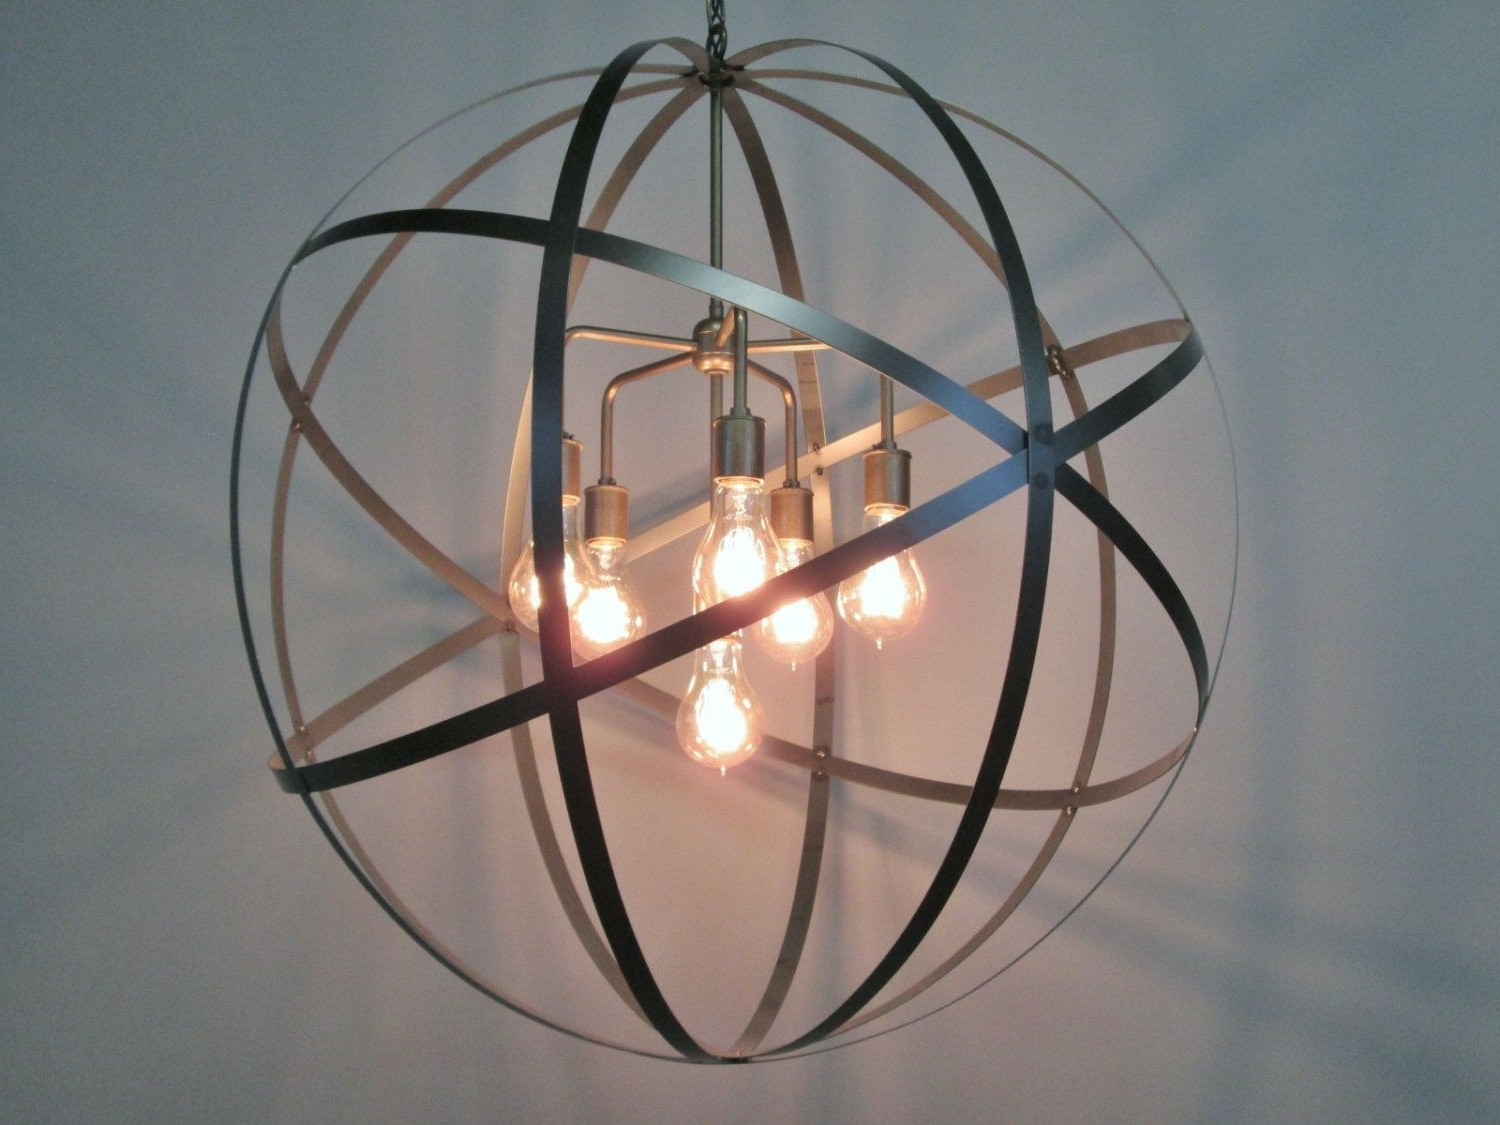 Beautiful Orb Chandelier For Home Decor Lights Ideas: Industrial 30 Pertaining To Trendy Orb Chandelier (View 4 of 20)